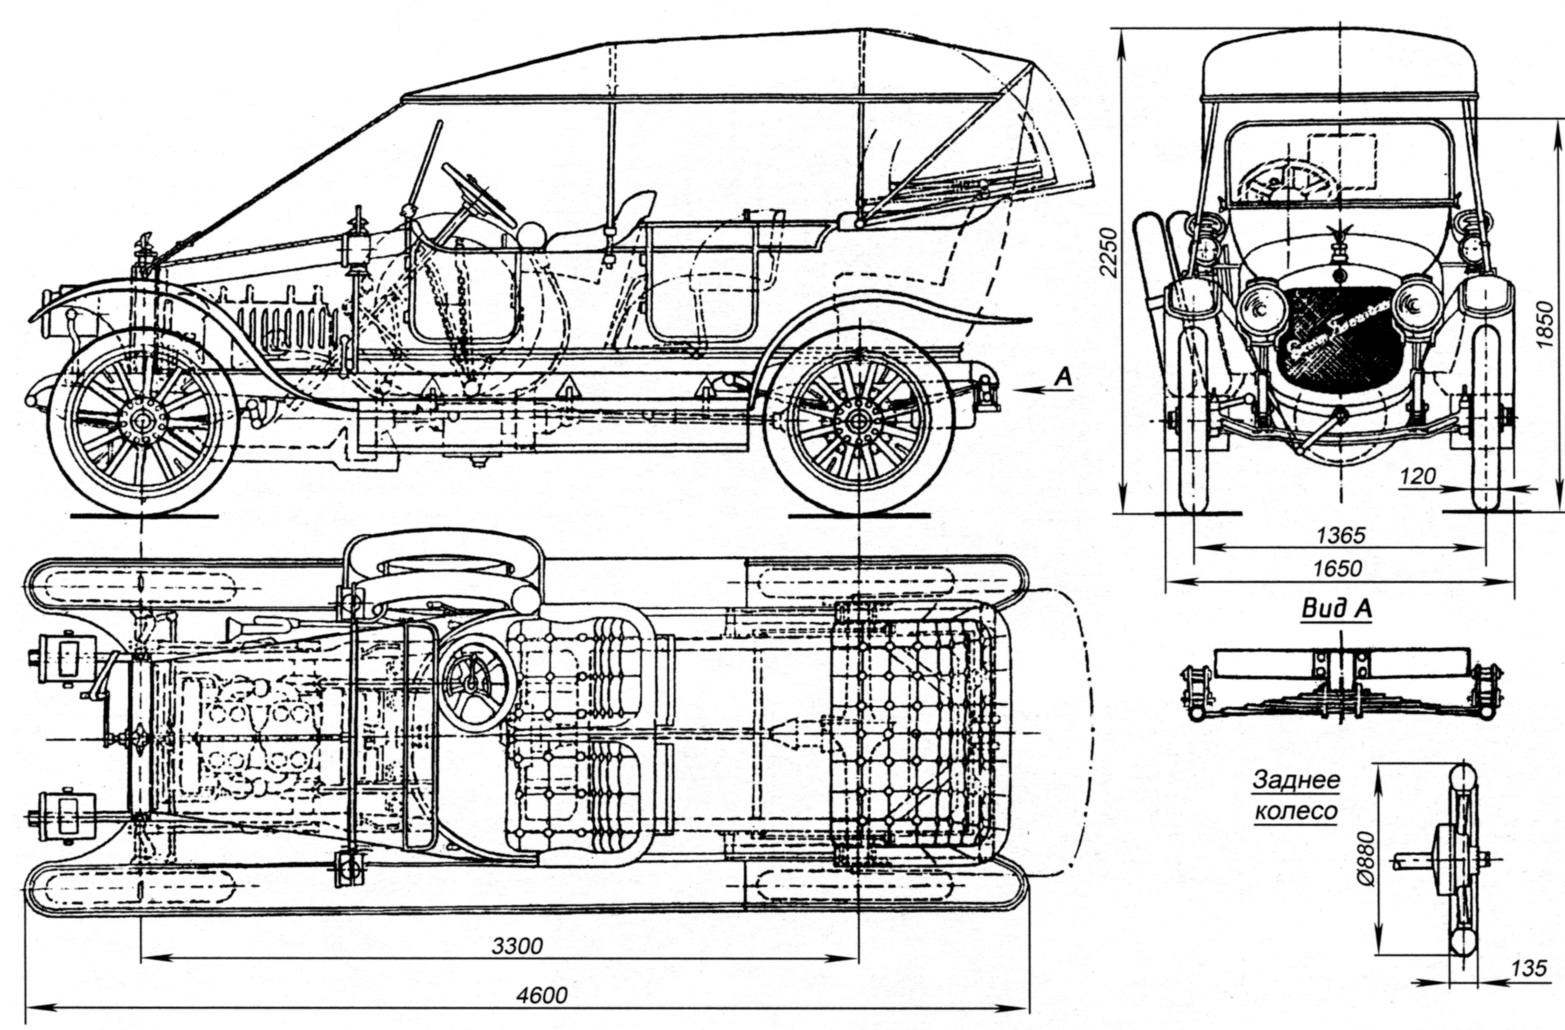 Design and principal dimensions of the car